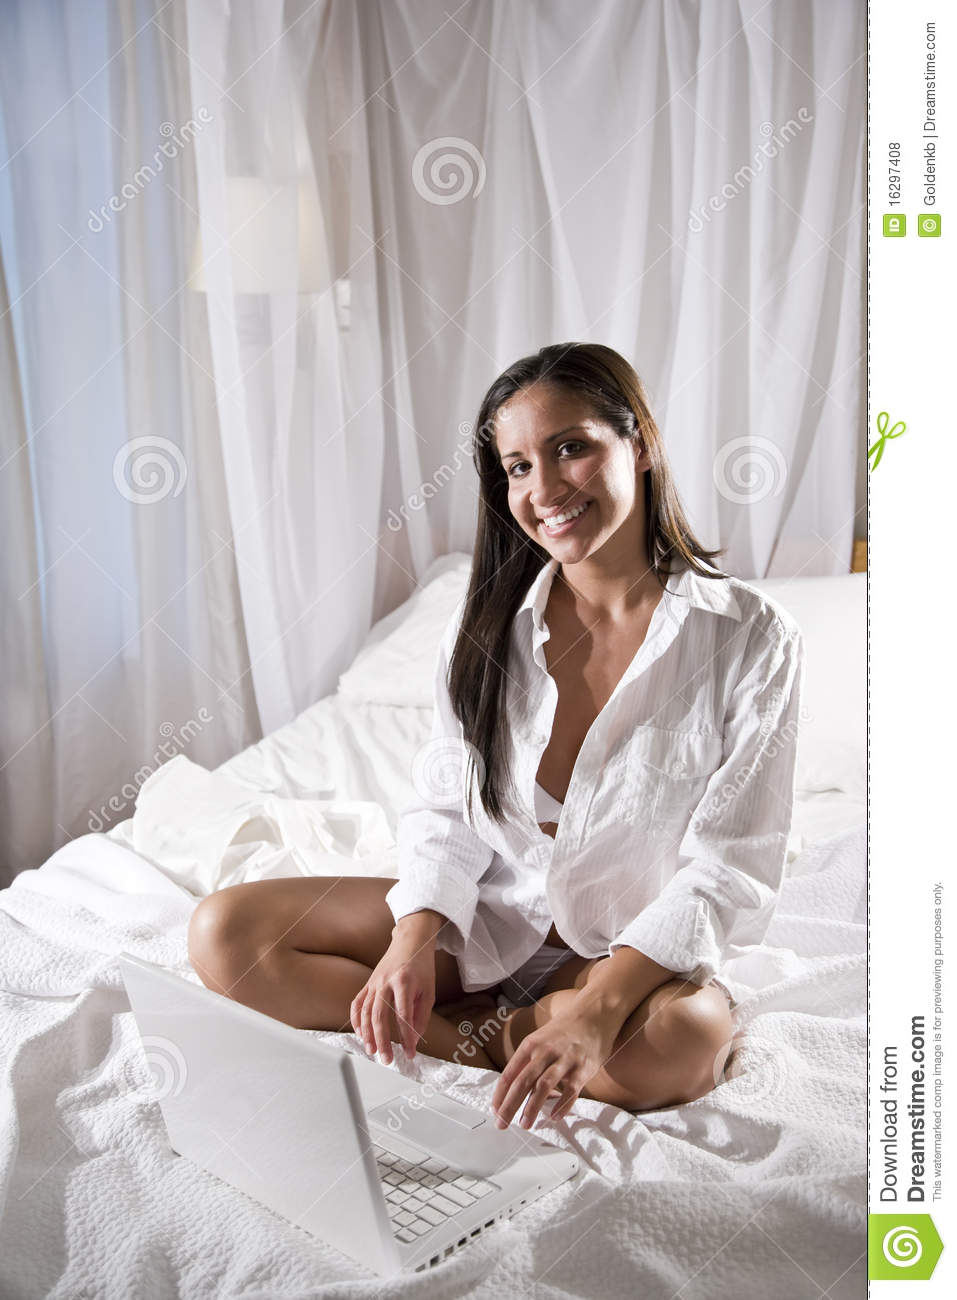 Hispanic Woman Sitting On Bed Using Laptop Royalty Free